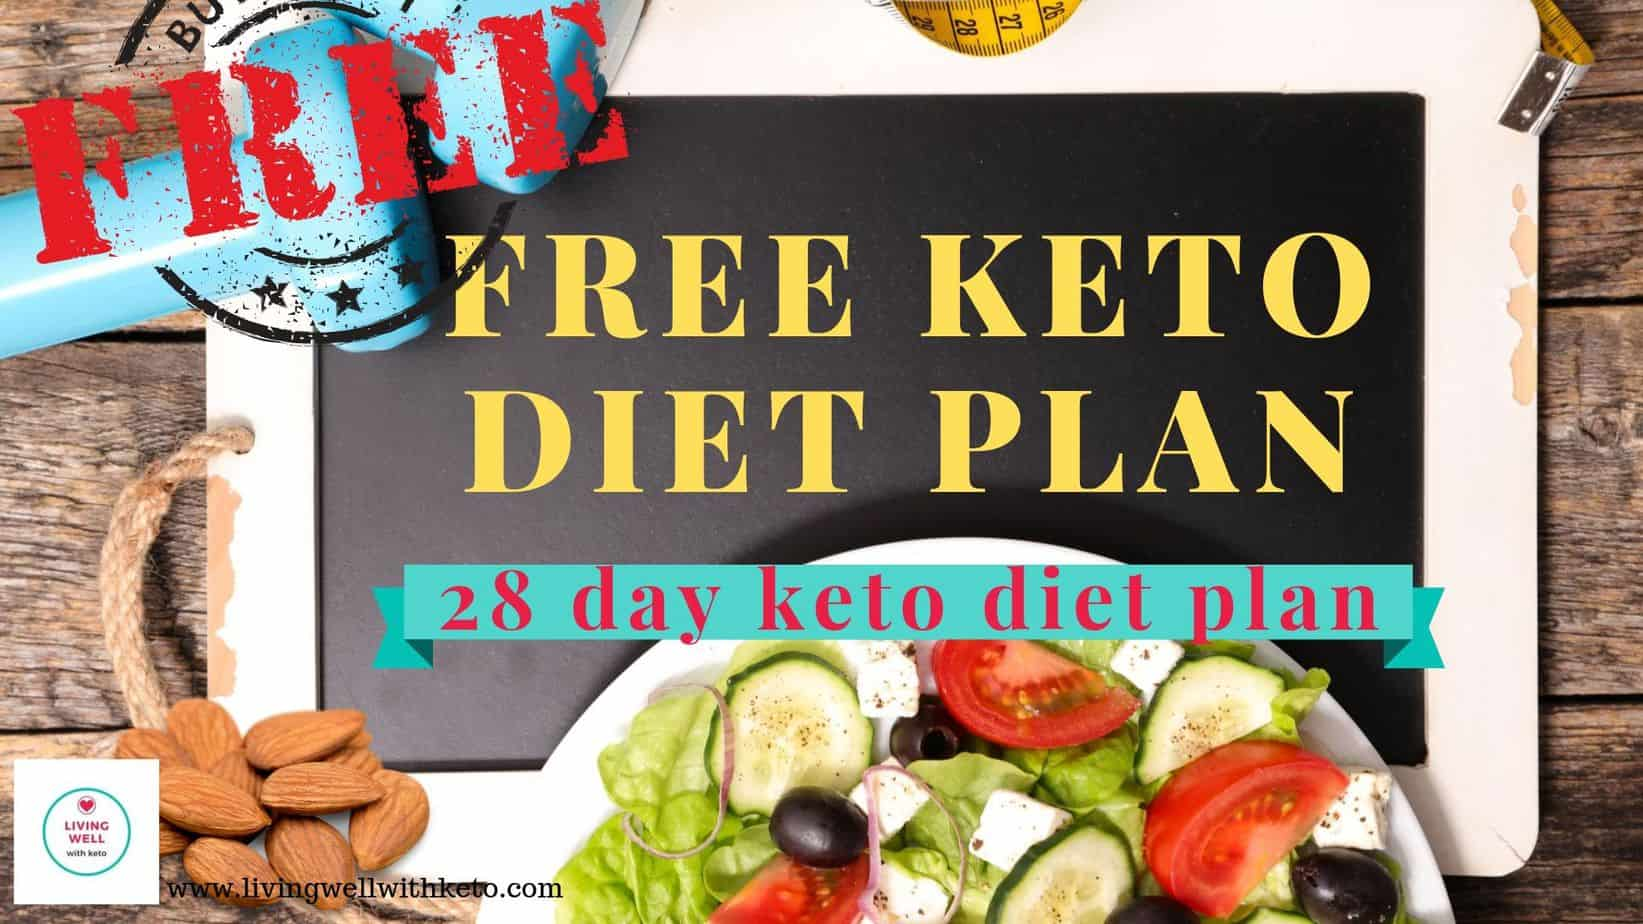 free keto diet plan (28 day keto diet plan)